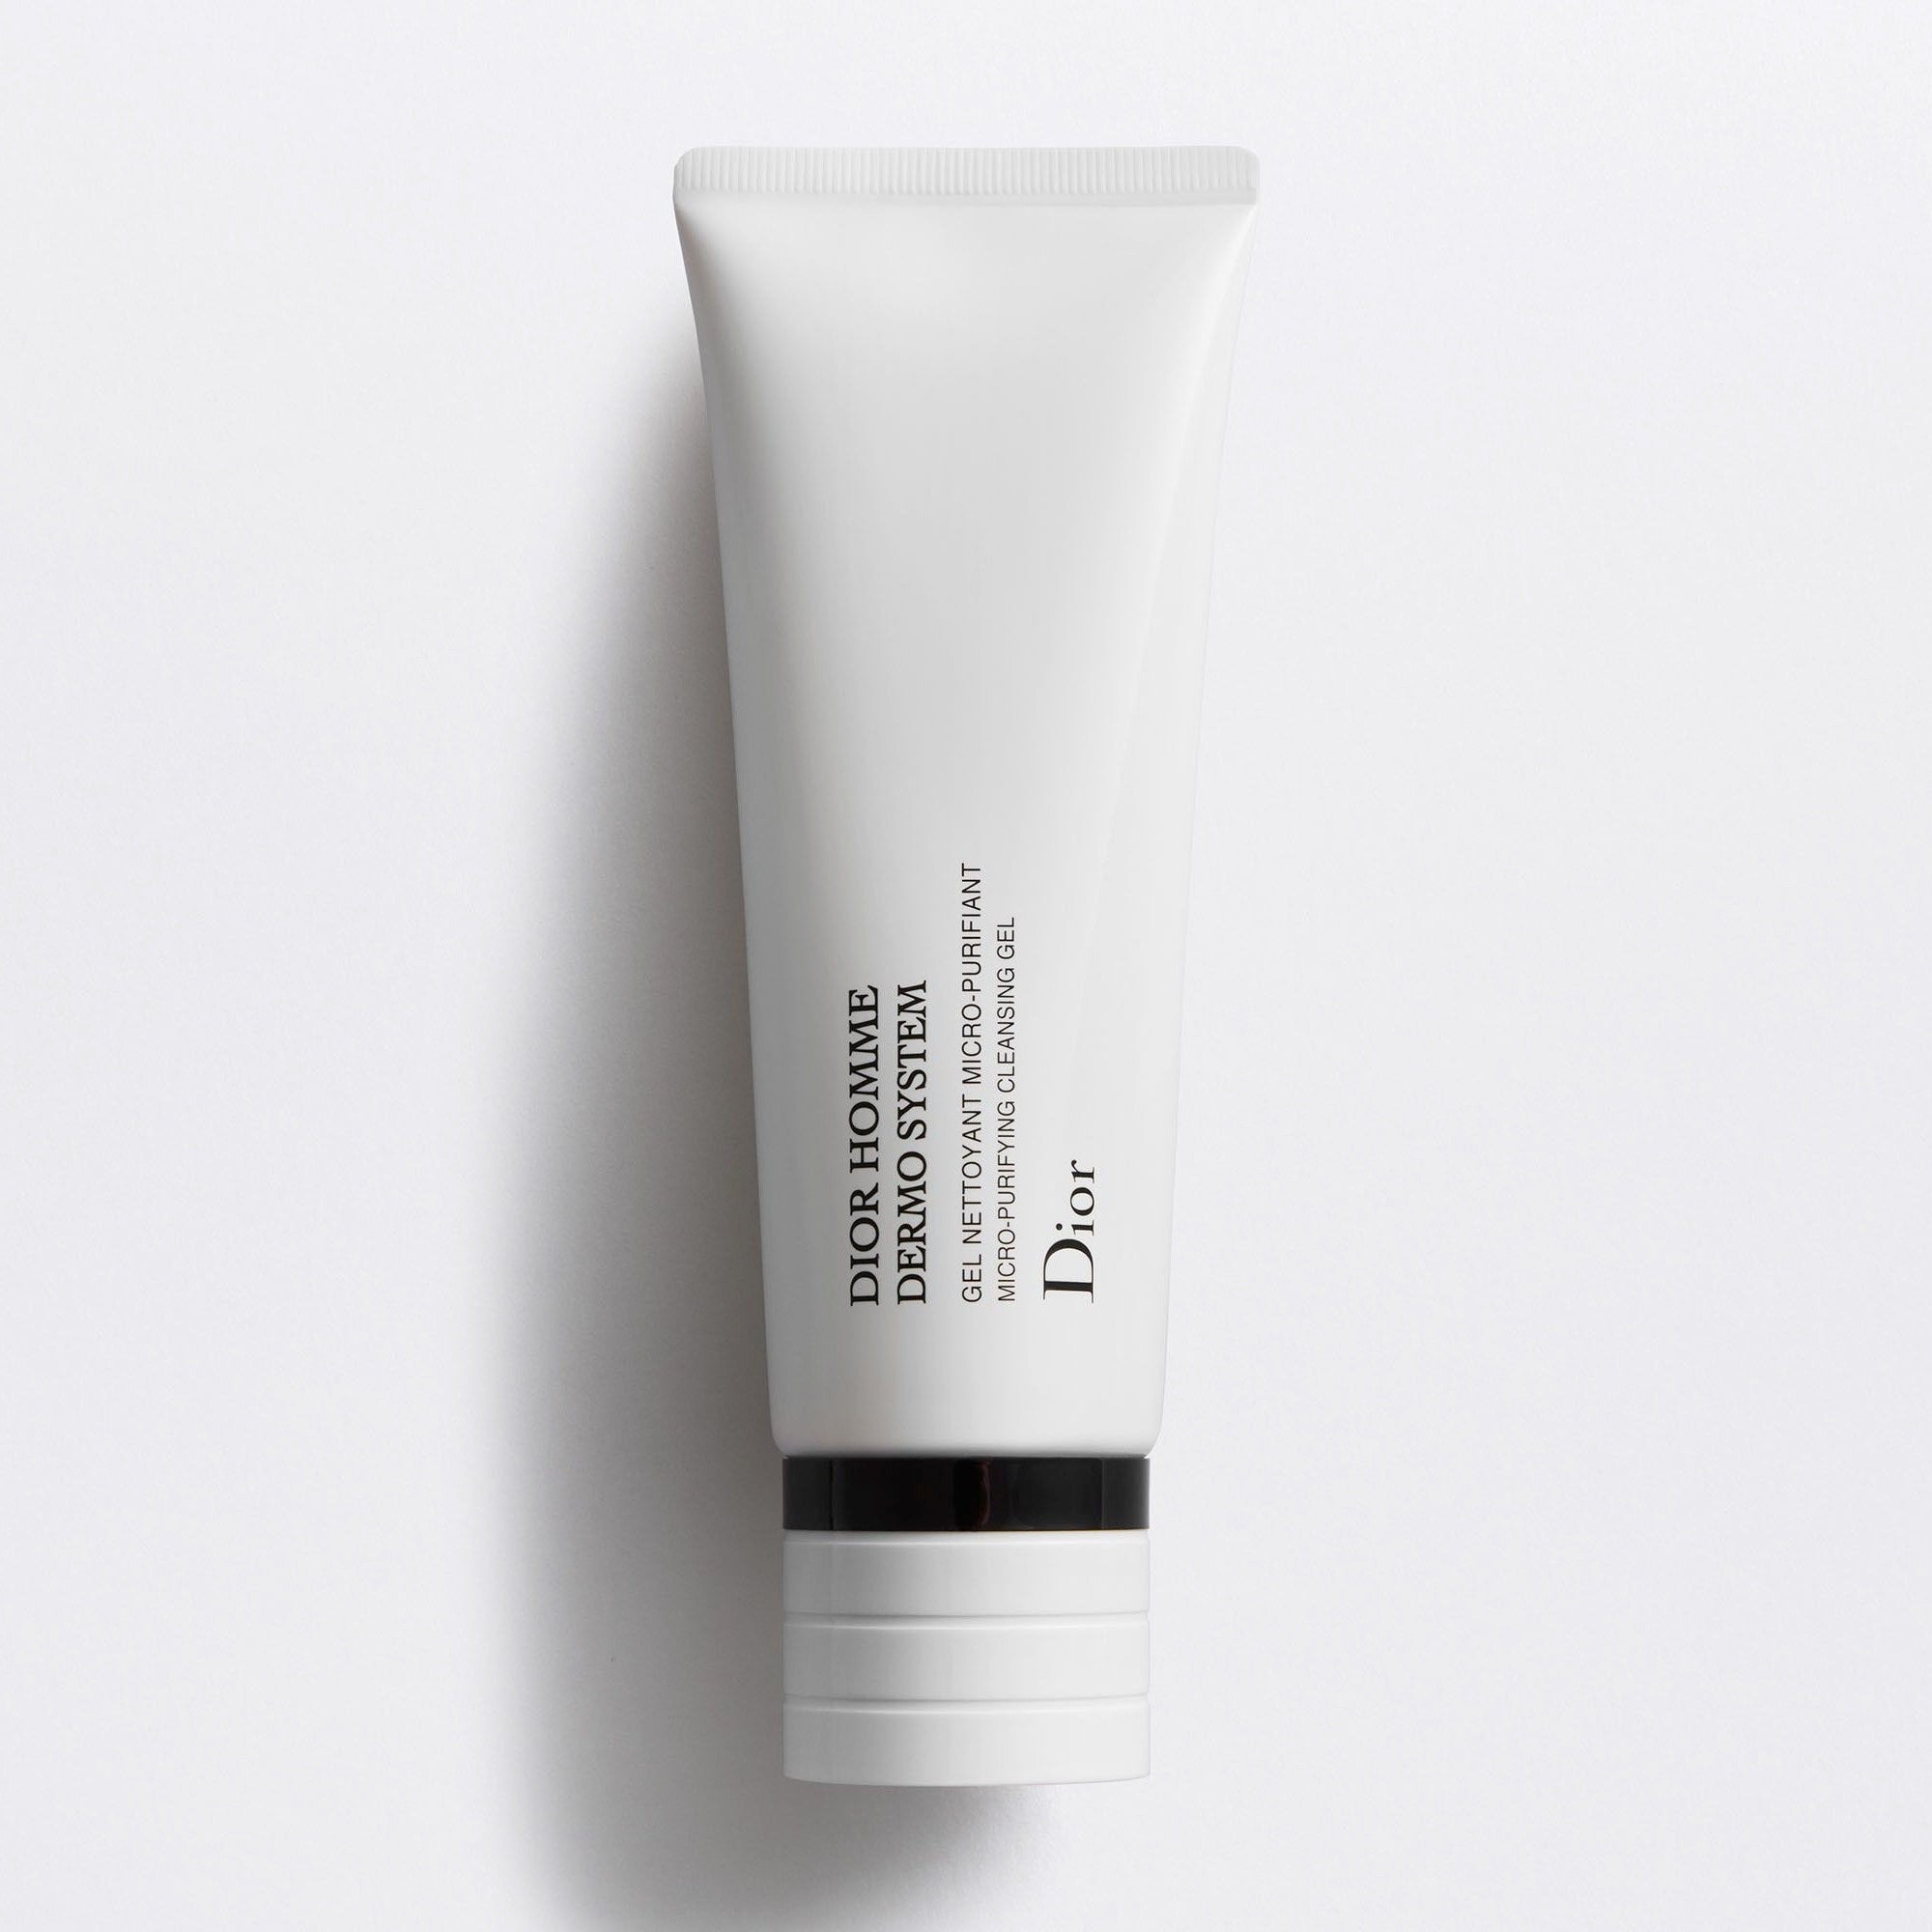 DIOR HOMME DERMO SYSTEM | Micro-Purifying Cleansing Gel - Bio-Fermented Ingredient & Vitamin E Phosphate